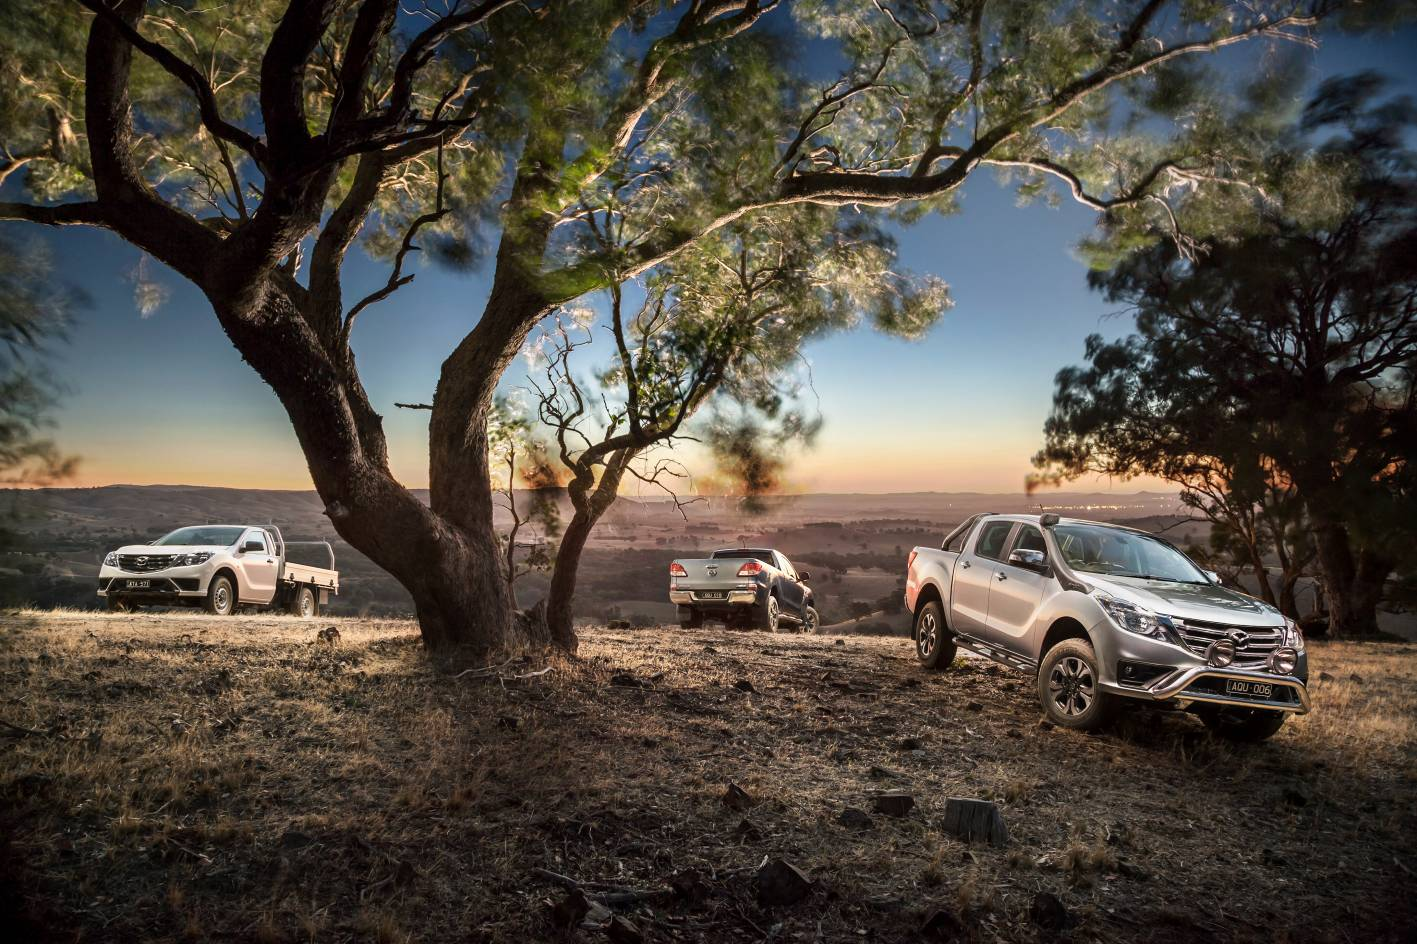 Mazda Bt 50 Review Buyers Guide Auto Expert By John Cadogan Saab 9 3 Radio Wiring Diagram Free Download 2018 06